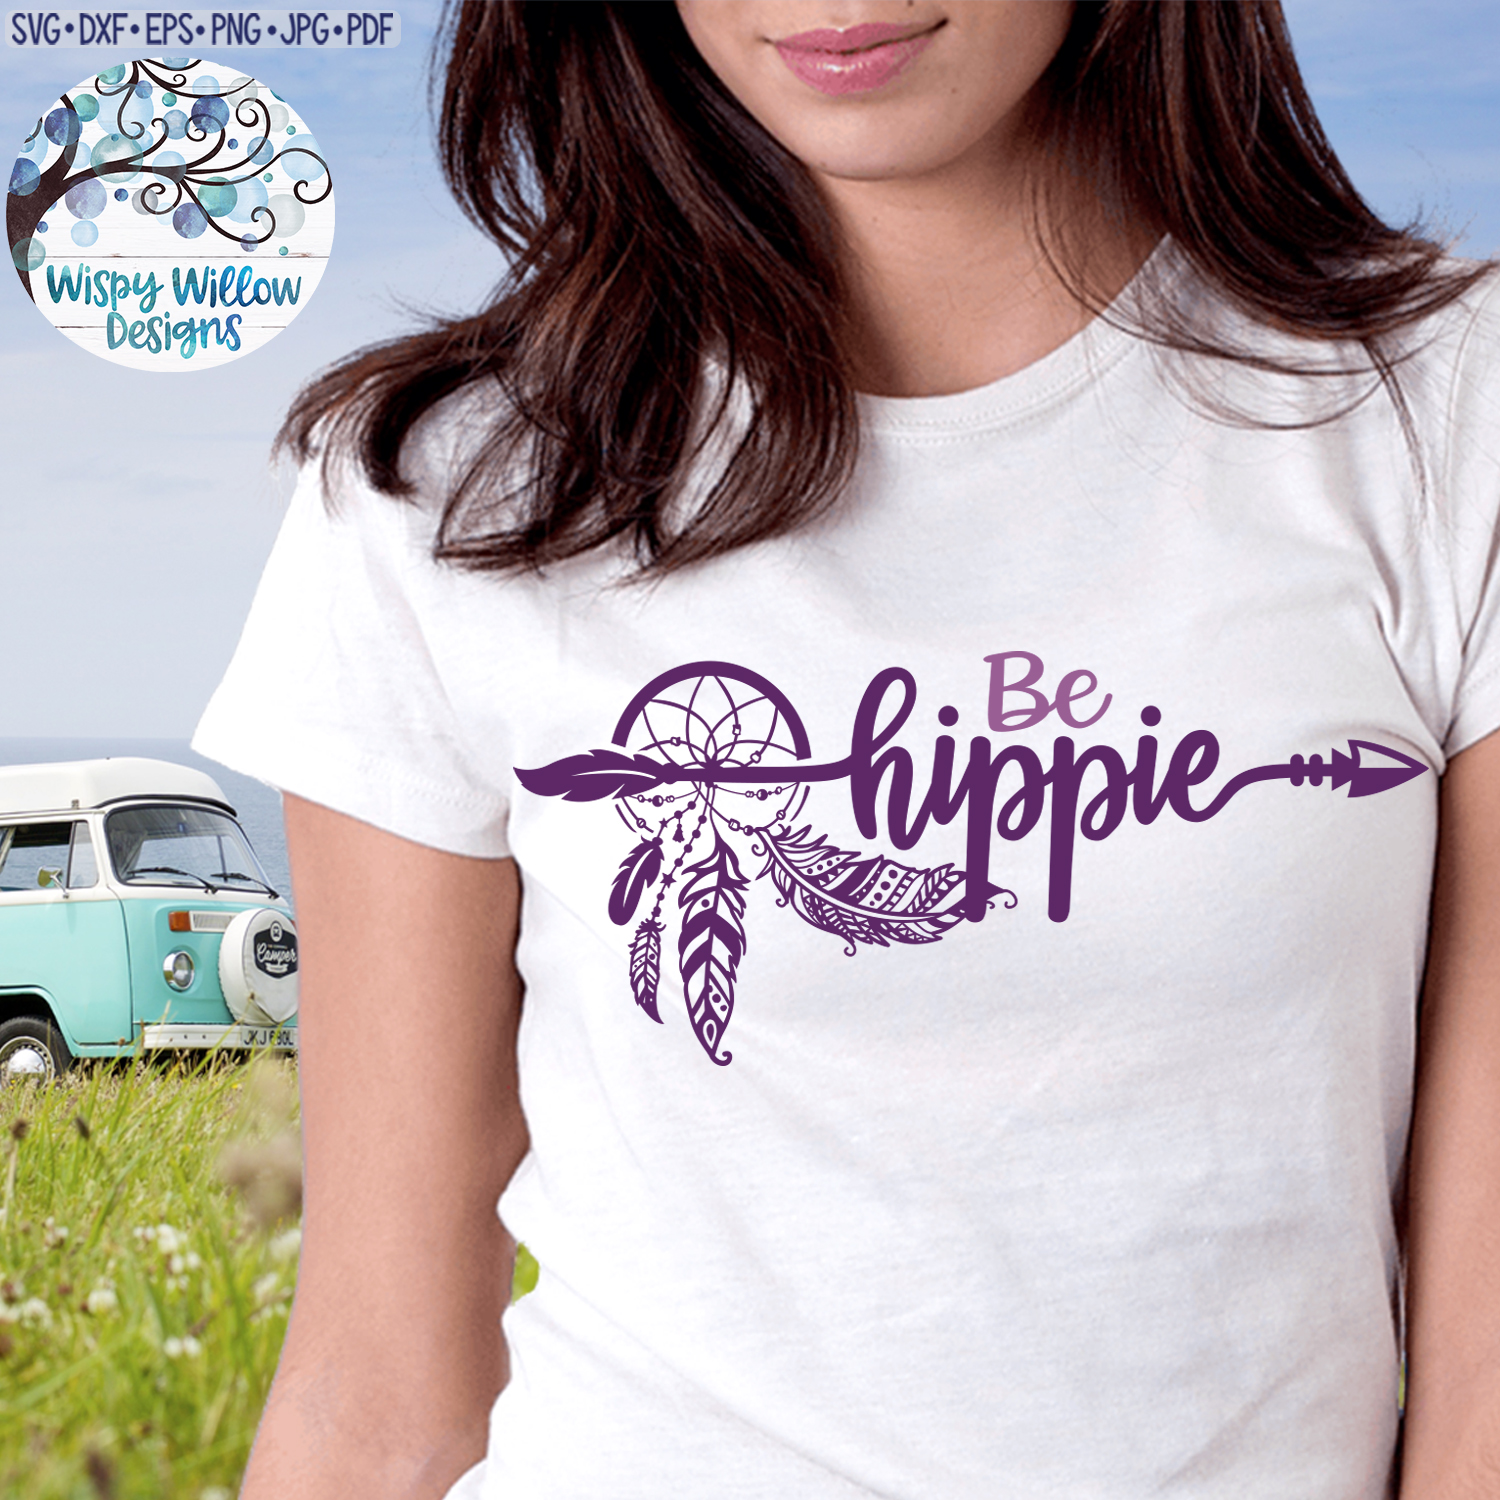 Be Hippy SVG | Dreamcatcher with Feathers | SVG Cut File example image 2